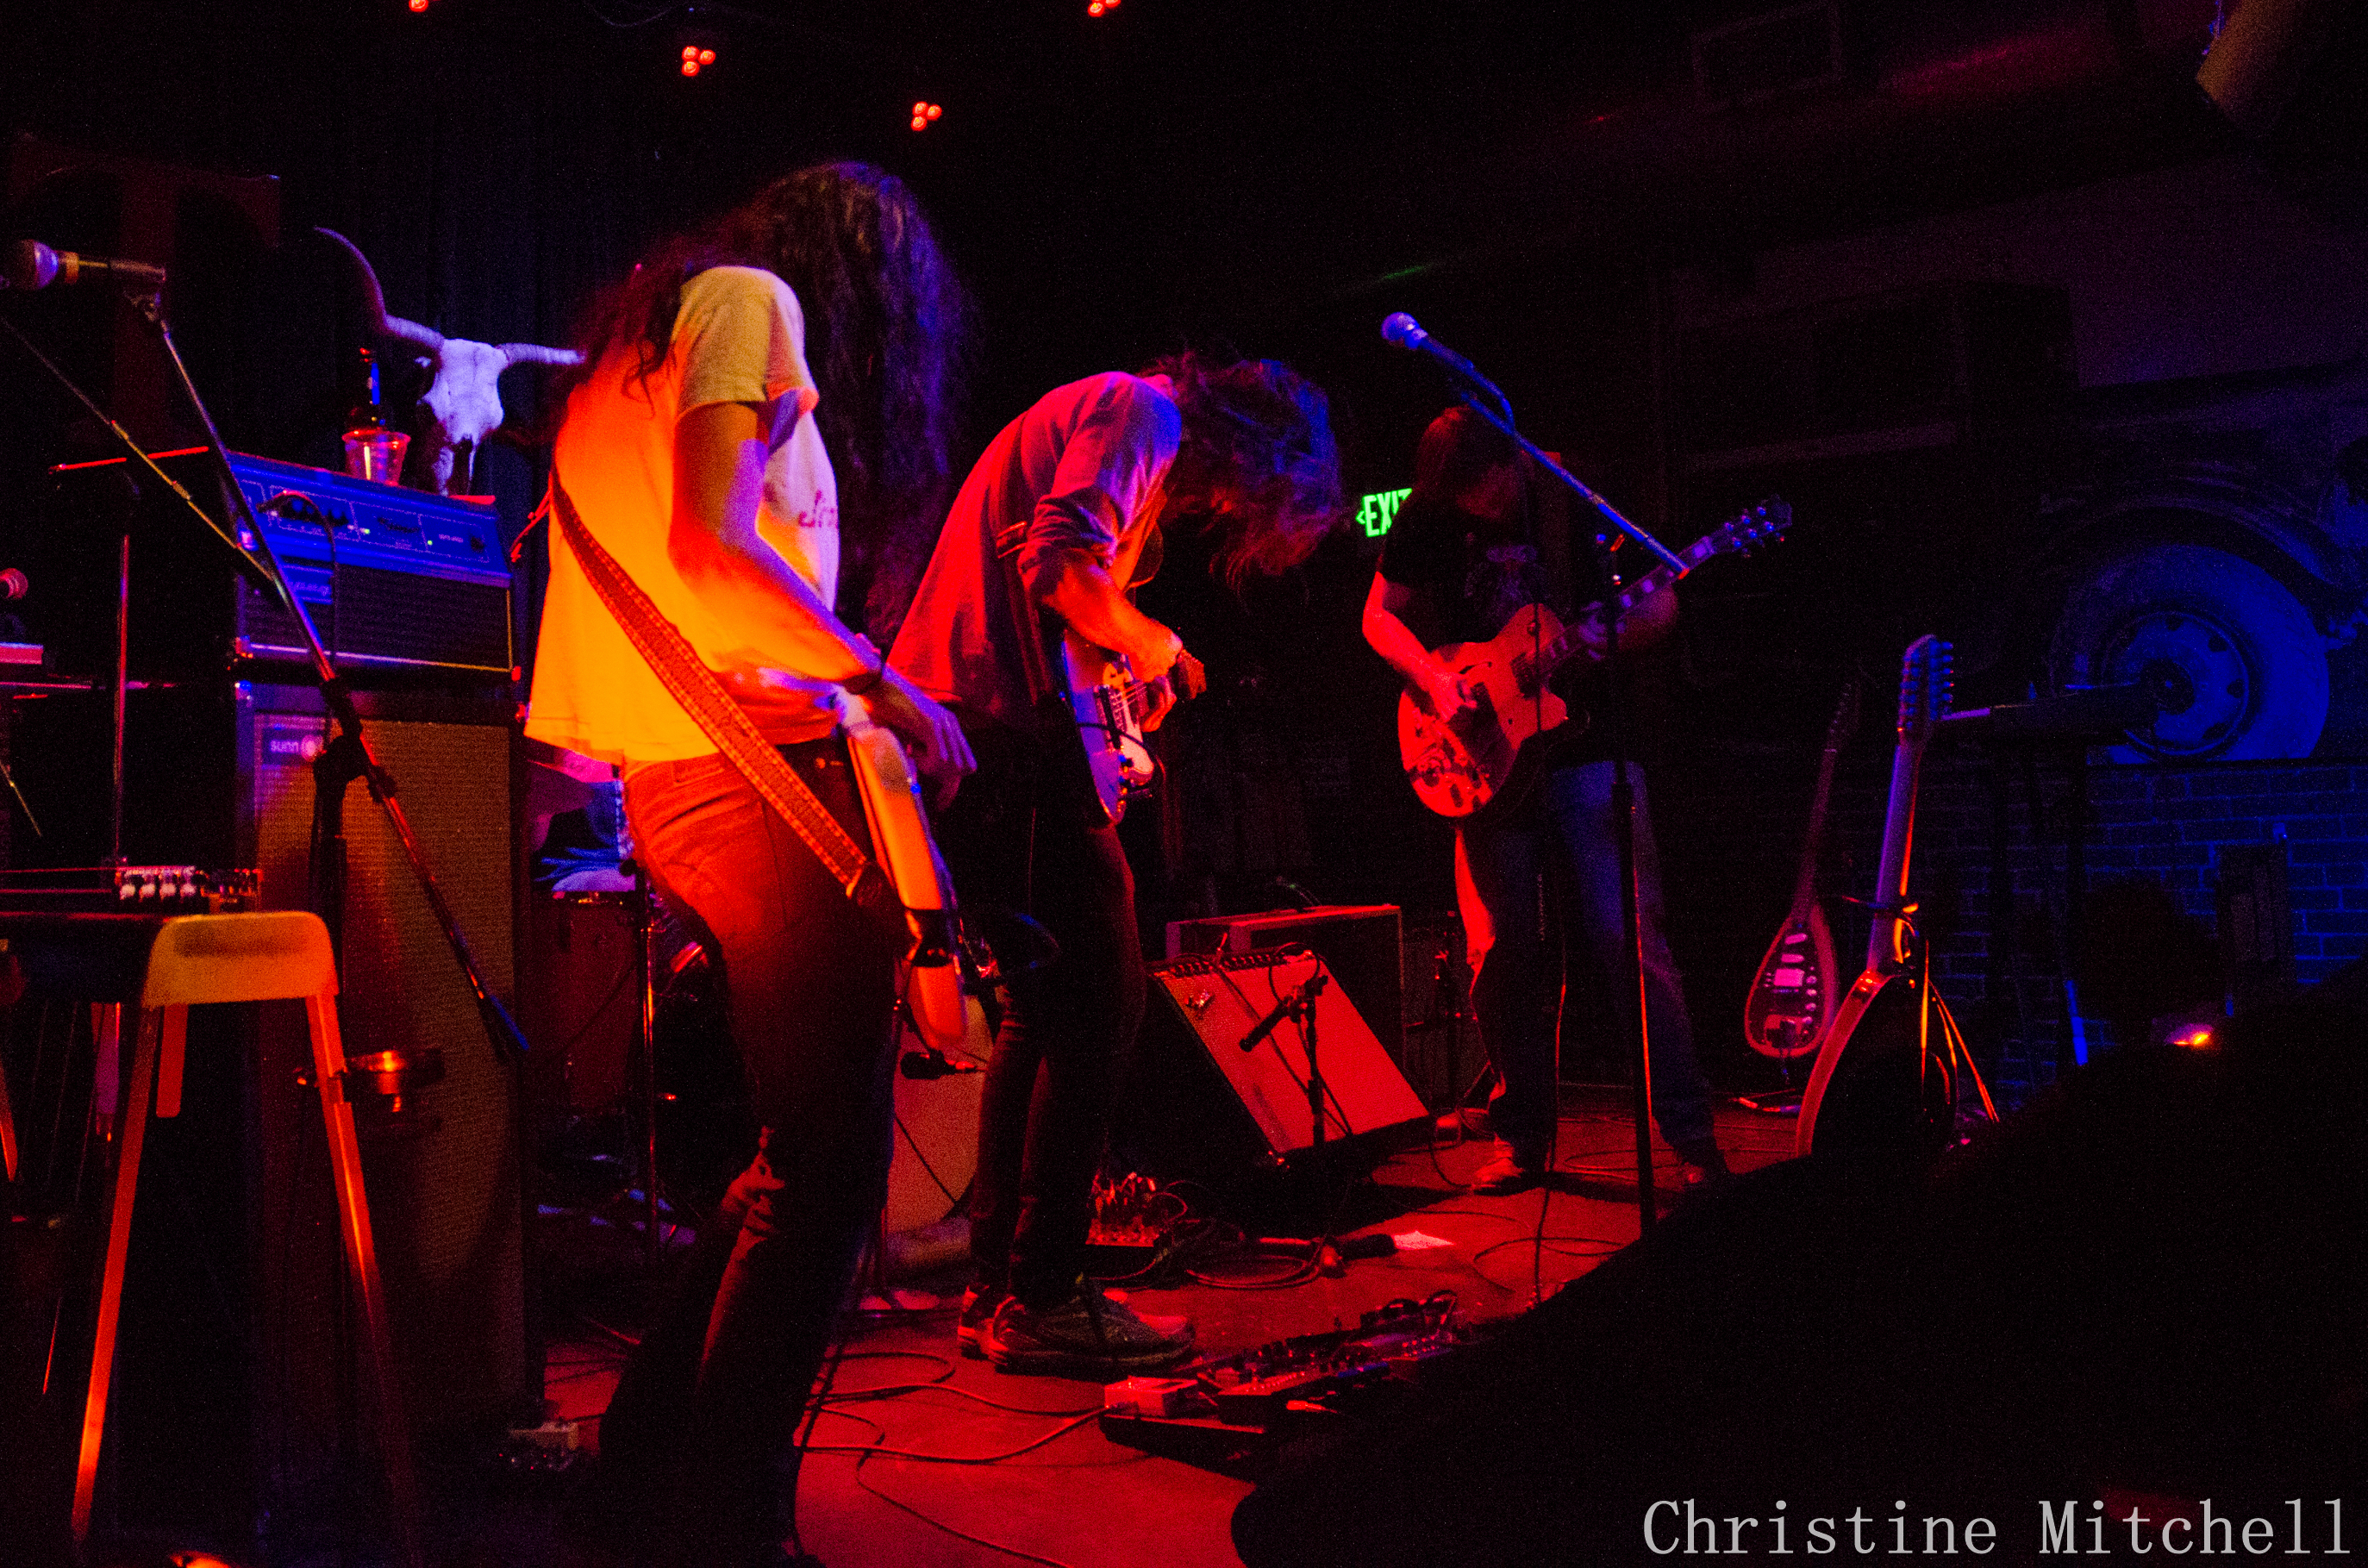 Cabana at the Tractor Tavern (Photo by Christine Mitchell)